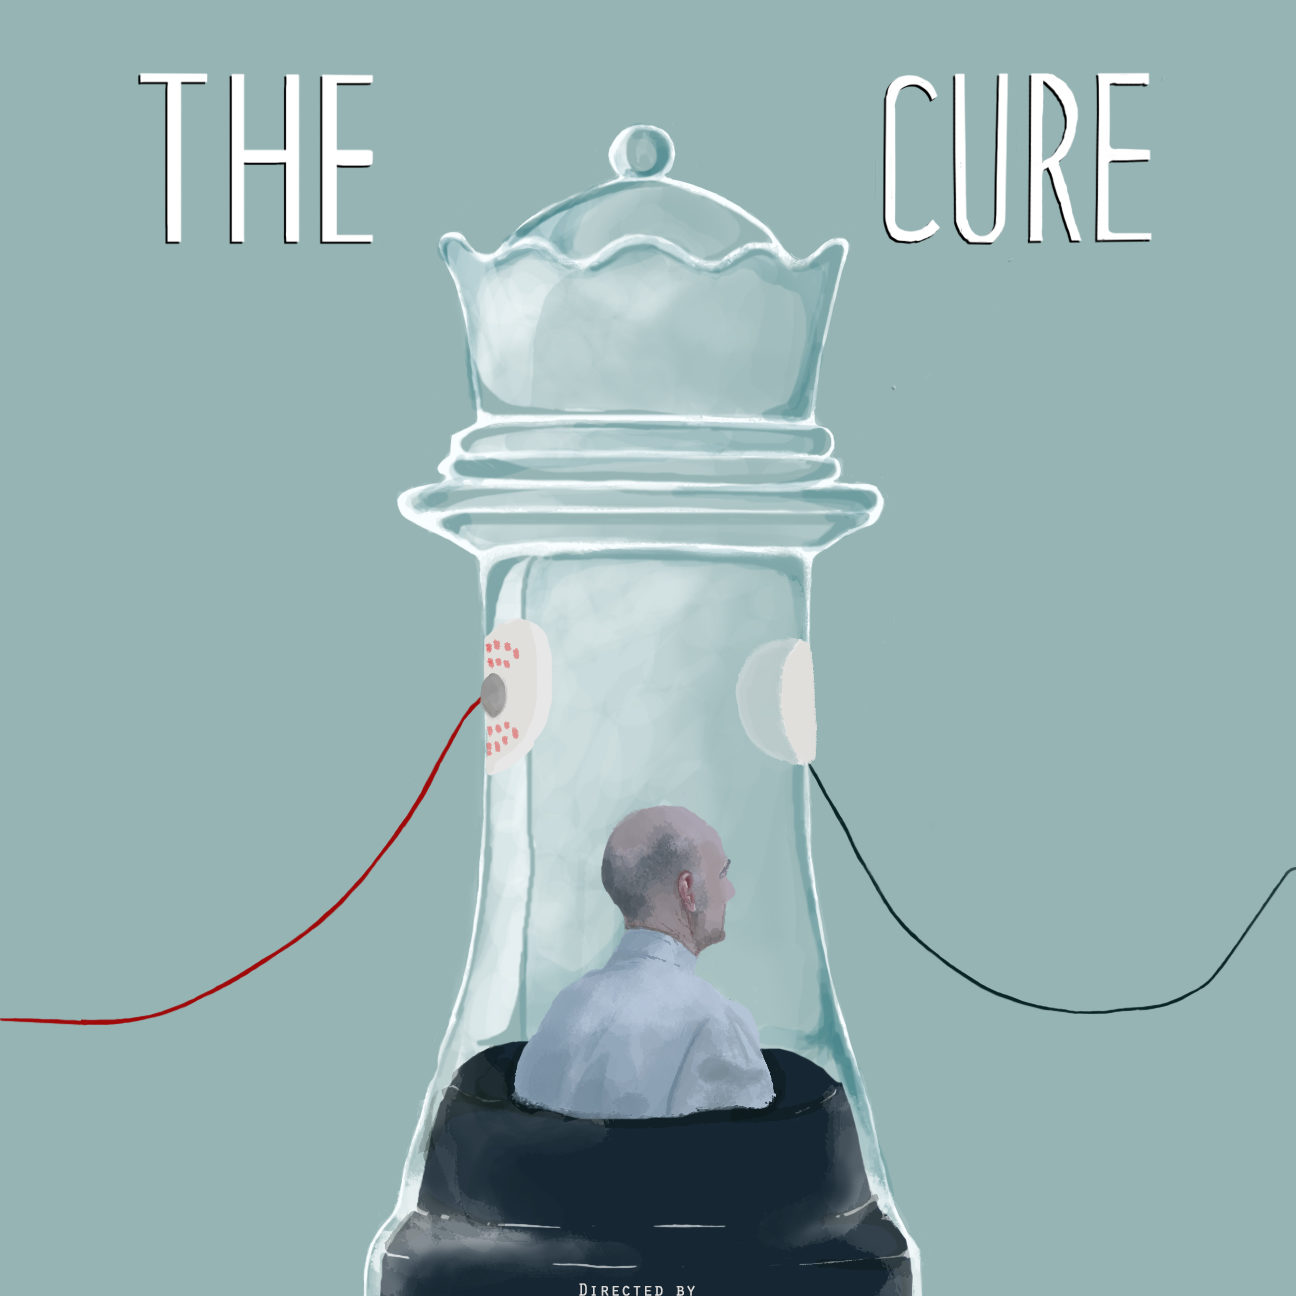 The Cure byHadrien Gass